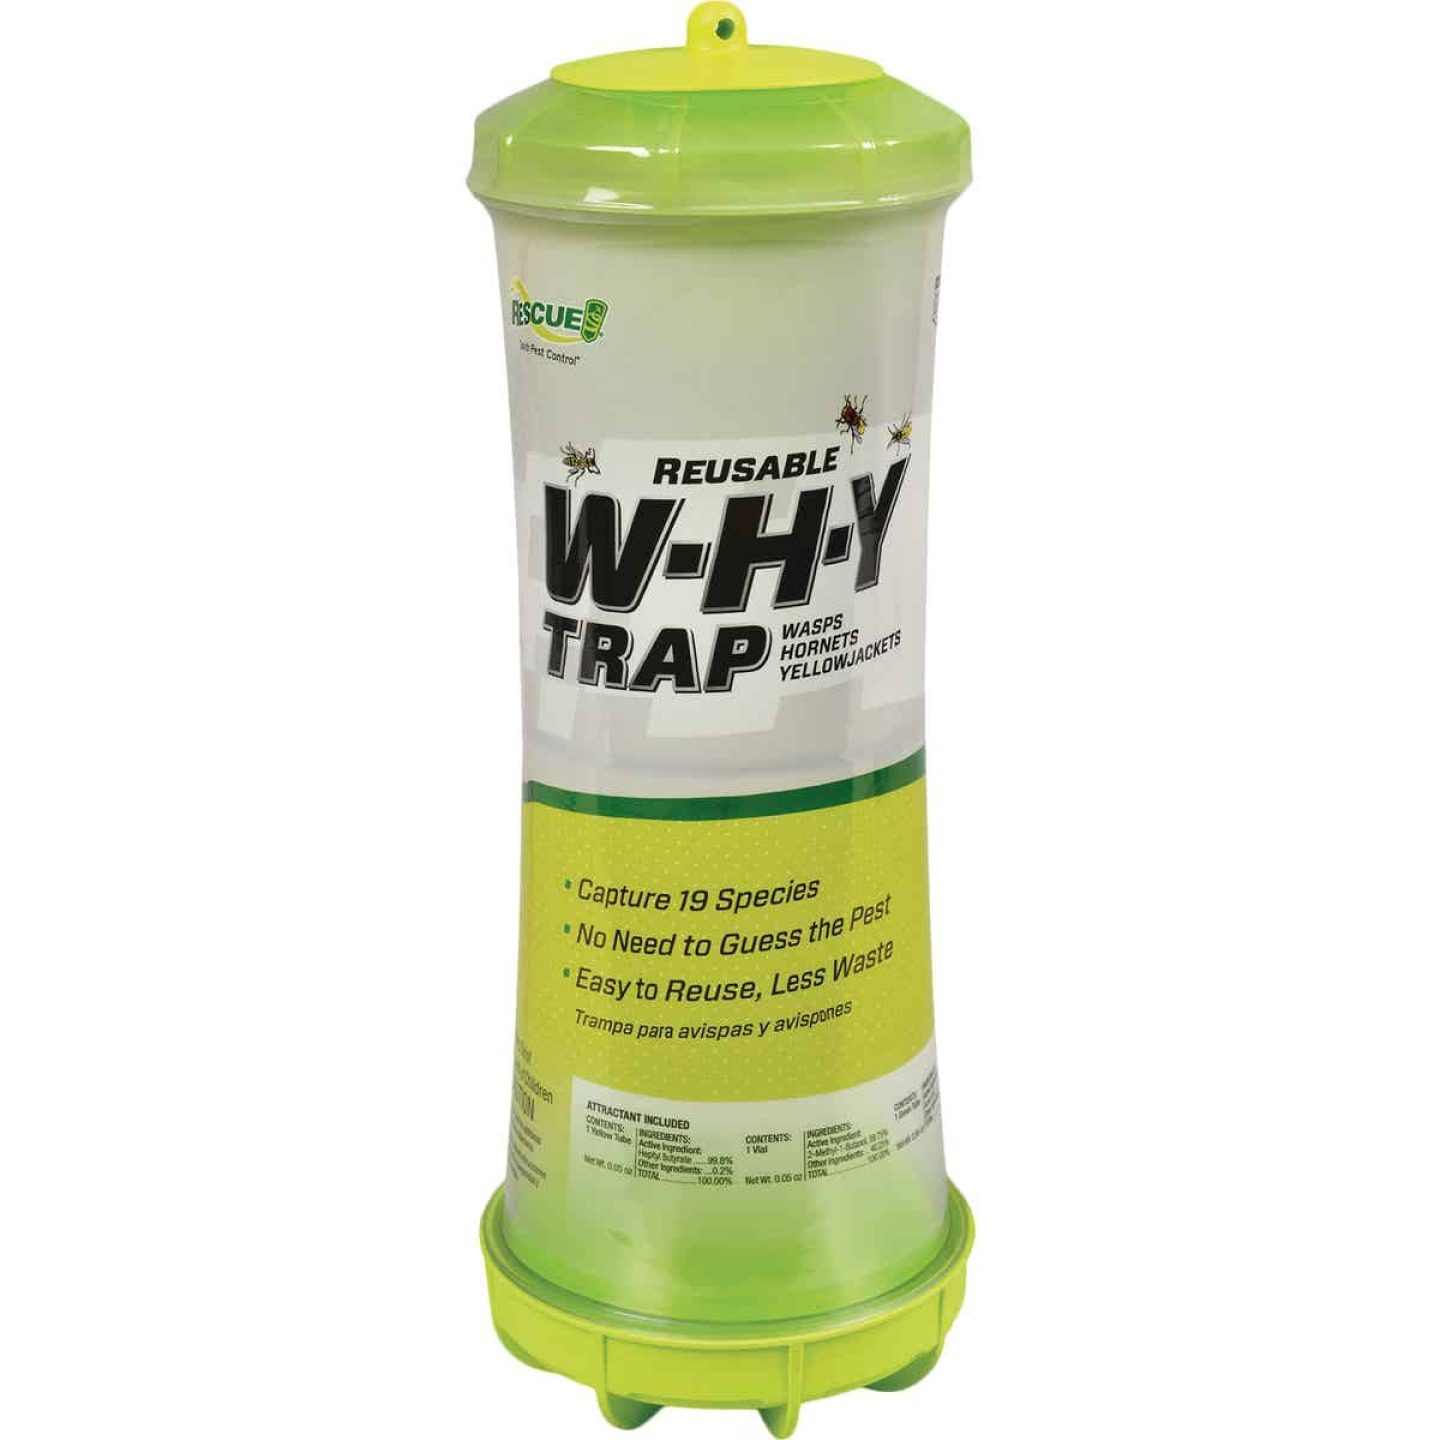 Rescue WHY Reusable Wasp, Hornet, & Yellow Jacket Trap Image 1